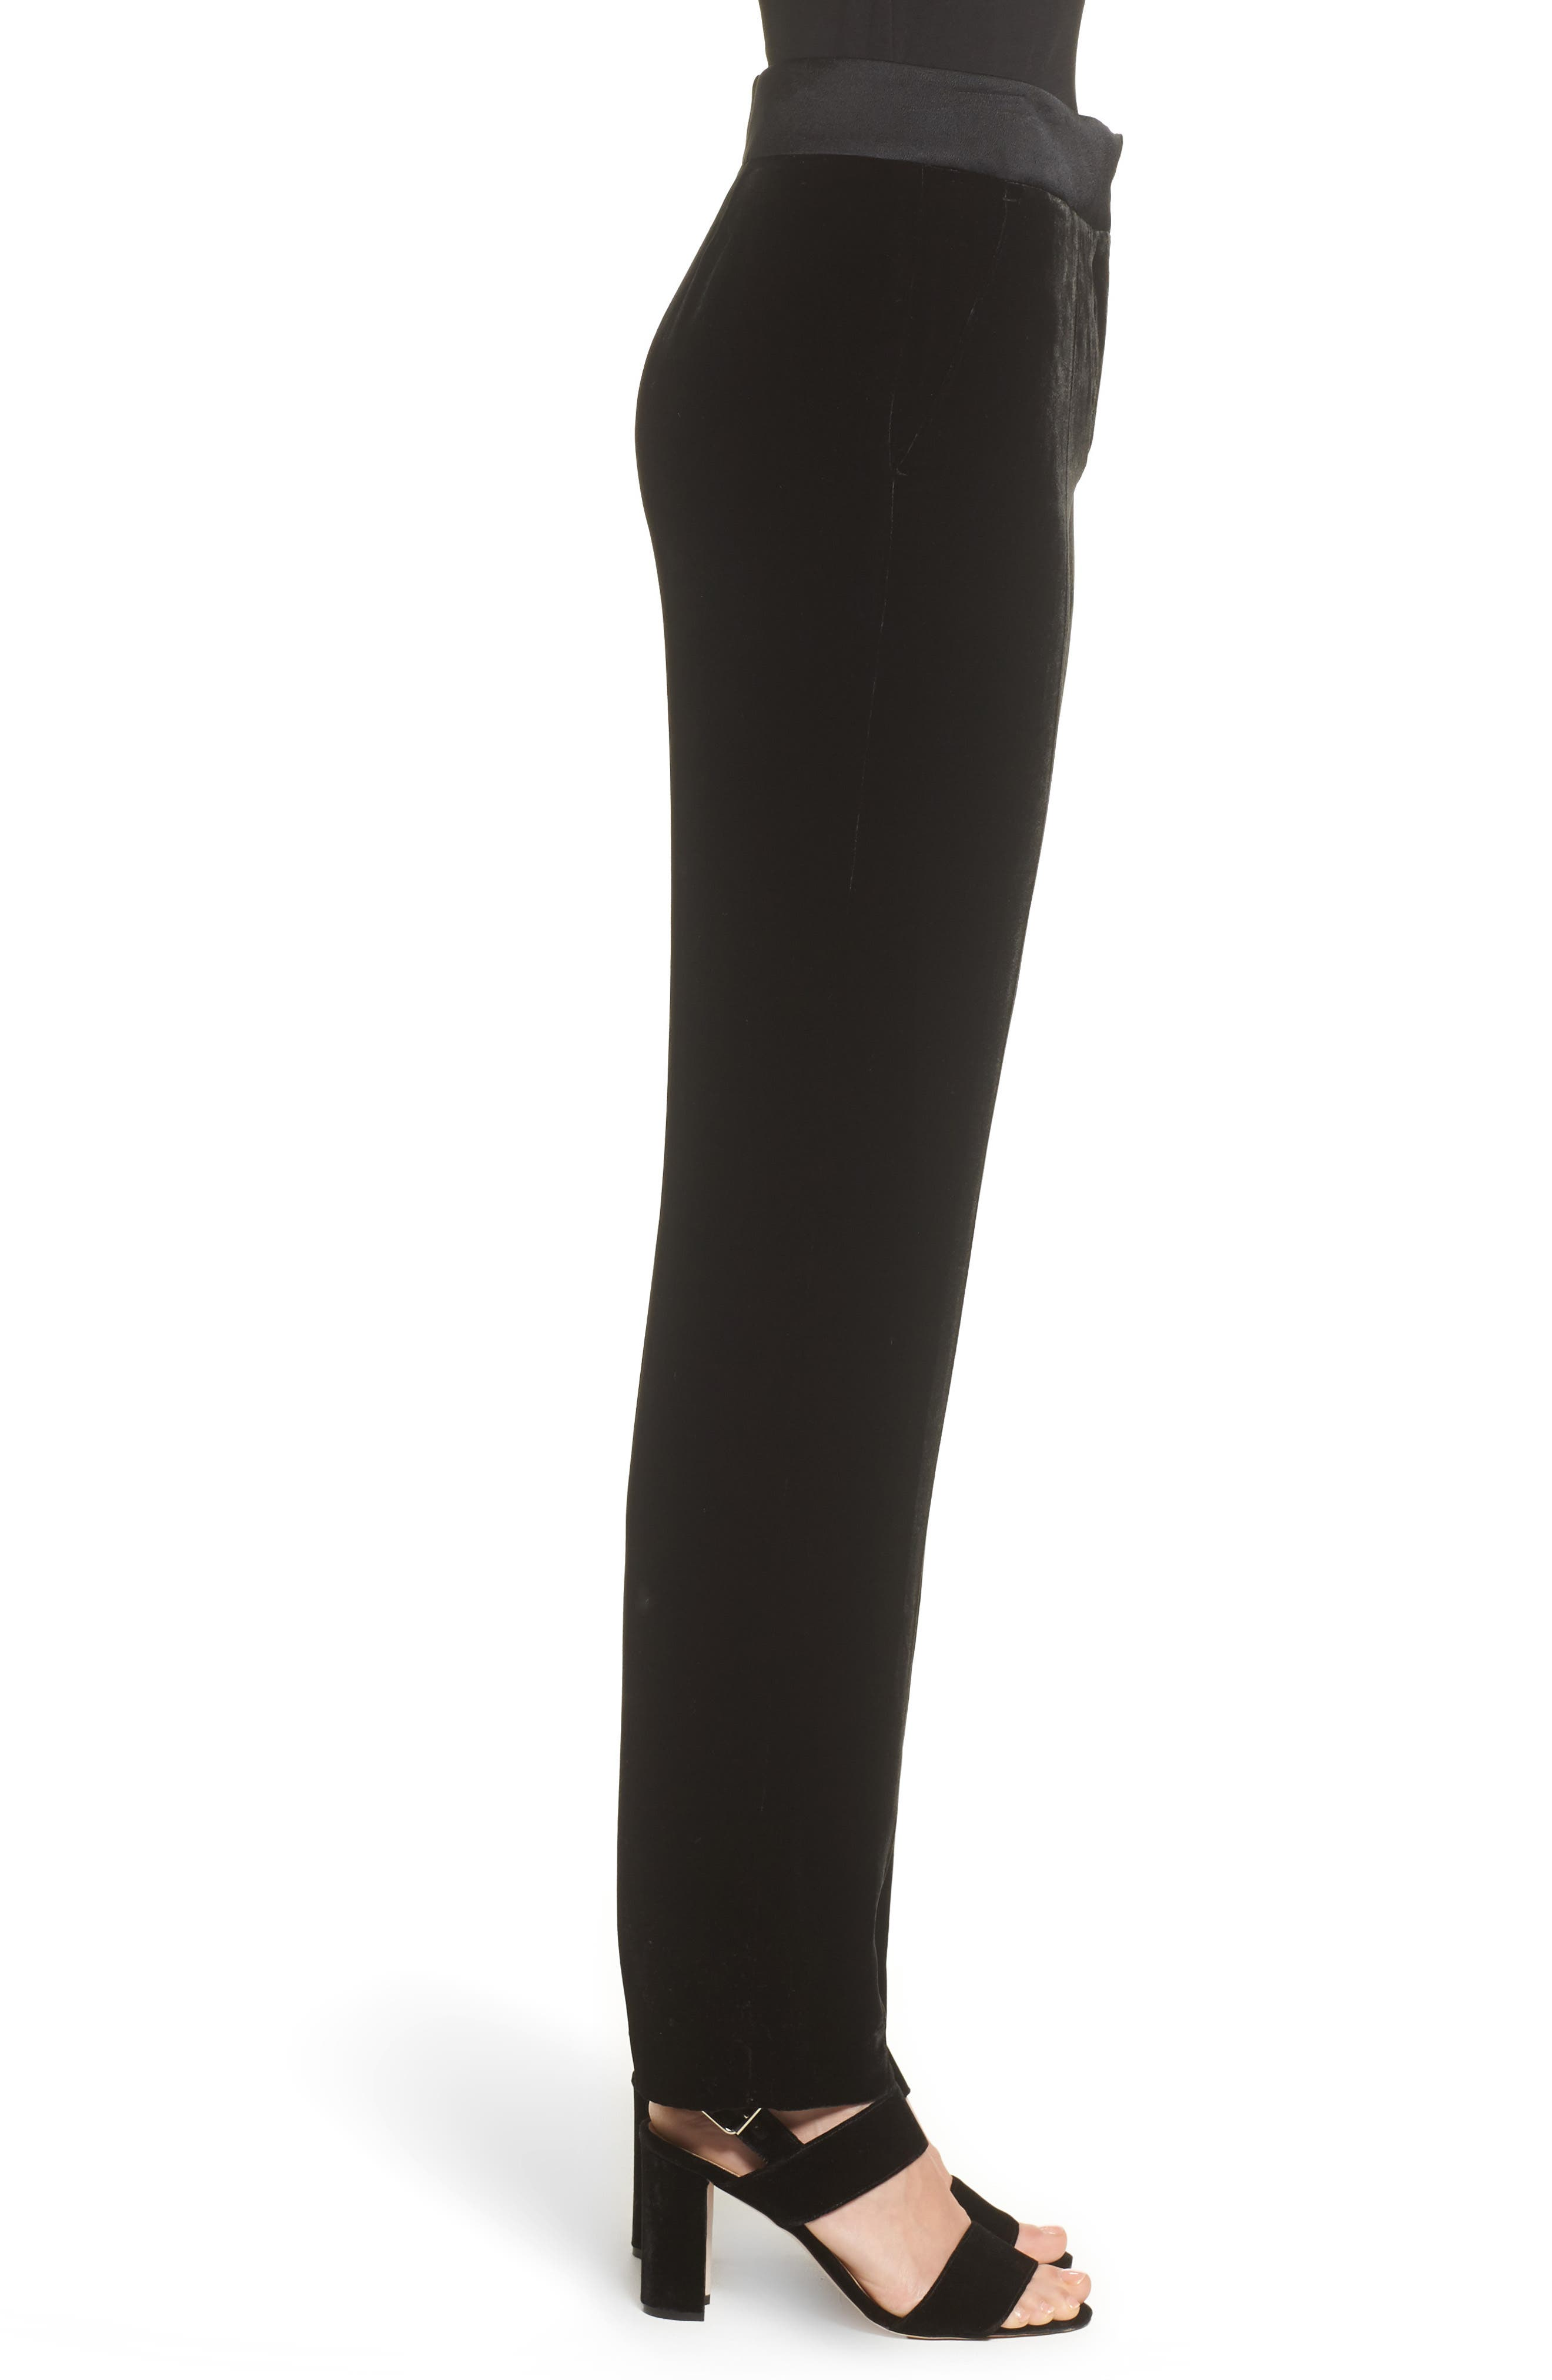 Tolesa Straight Leg Velvet Pants,                             Alternate thumbnail 3, color,                             001